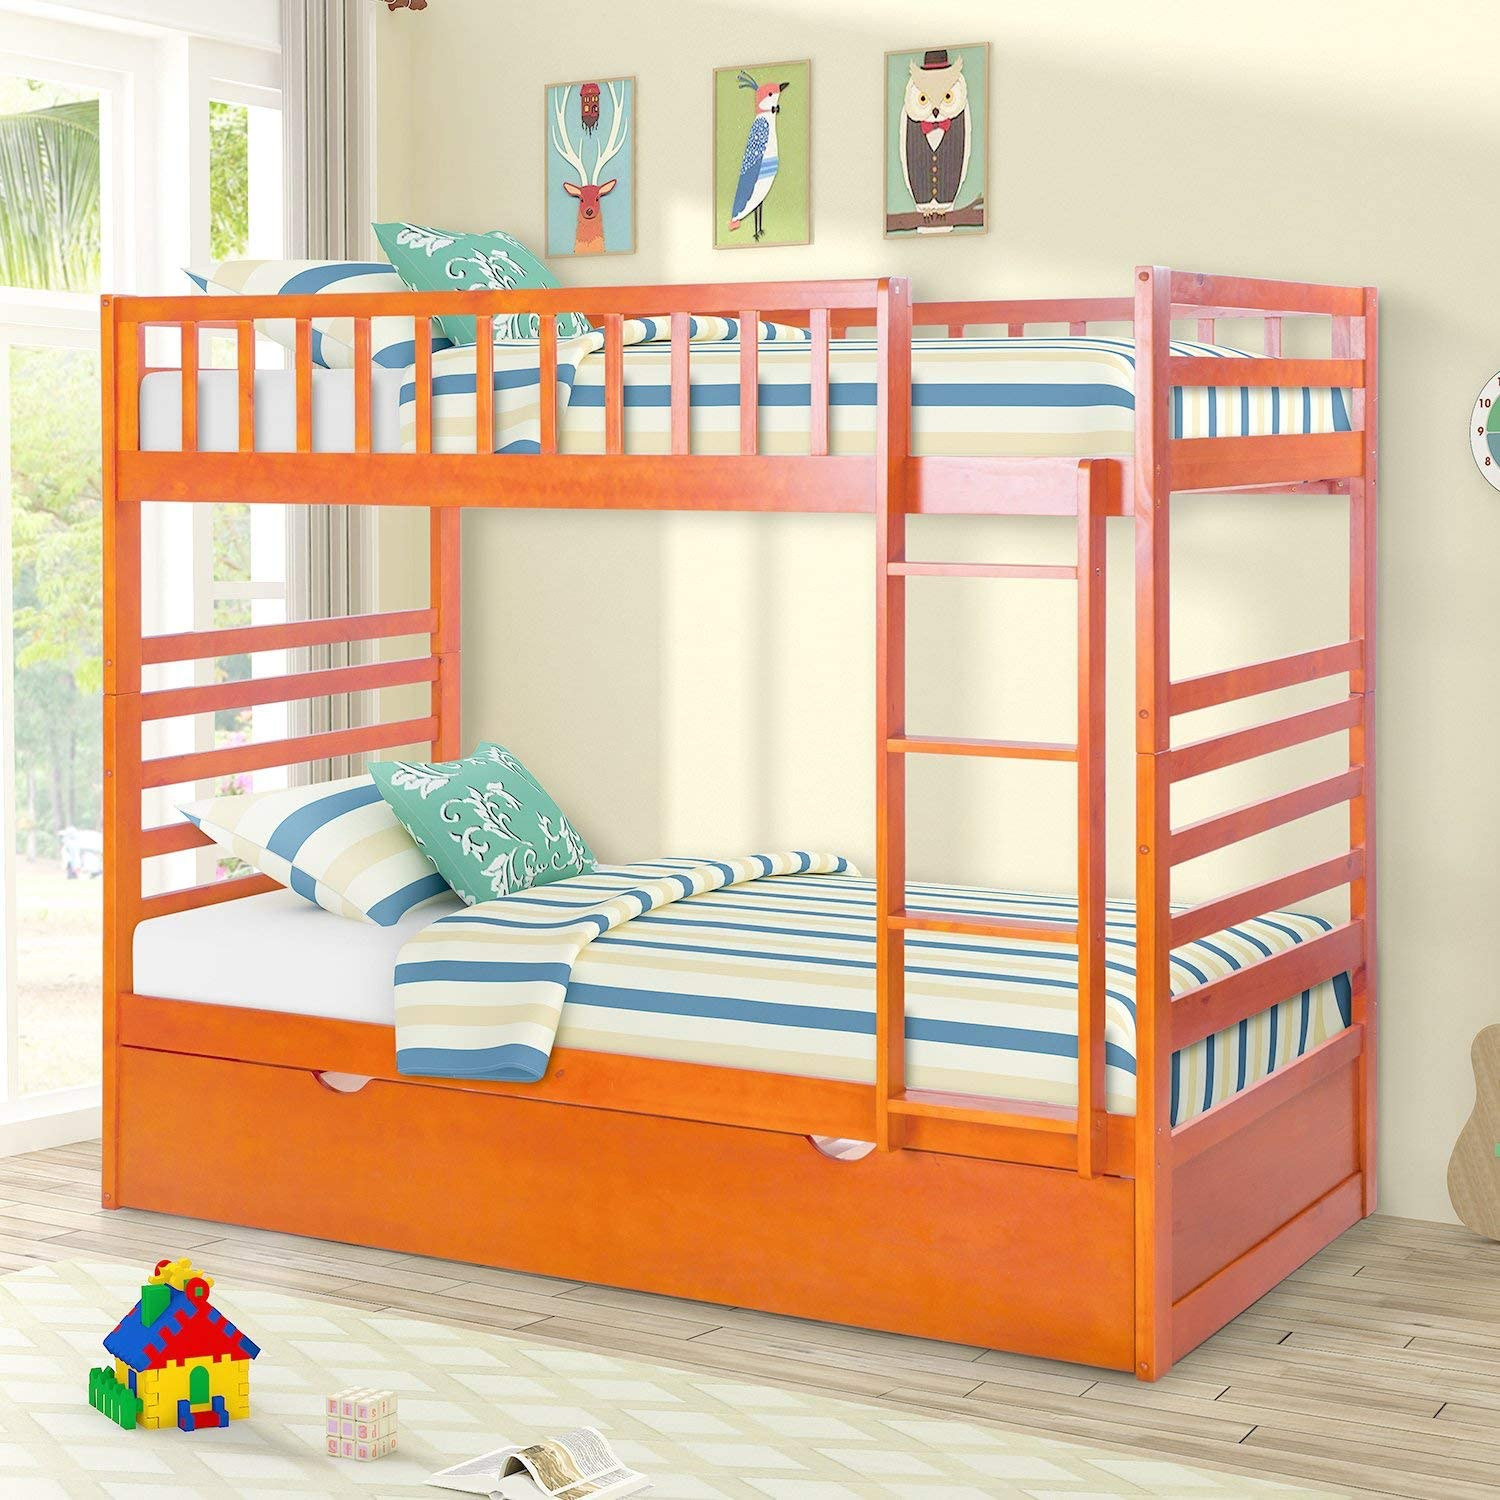 Twin Bunk Bed with Trundle Solid Wood Bedframe Space Saving Design Sleeping Bedroom Furniture with Ladder and Safety Rail for Boys and Girls, Oak2